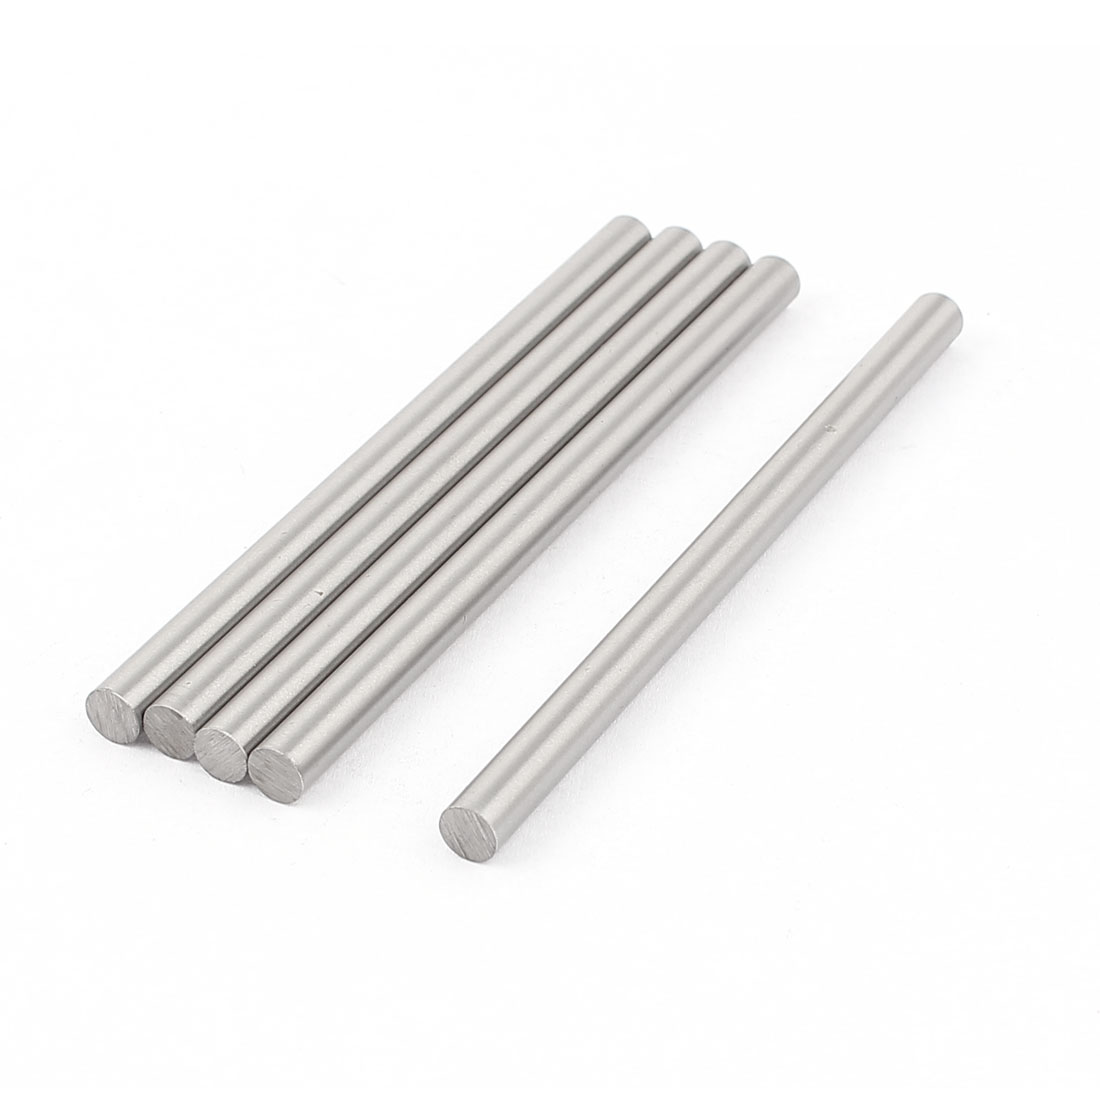 5 Pcs 6mmx100mm Metal Solid Round Rod Bar for DIY RC Model Car